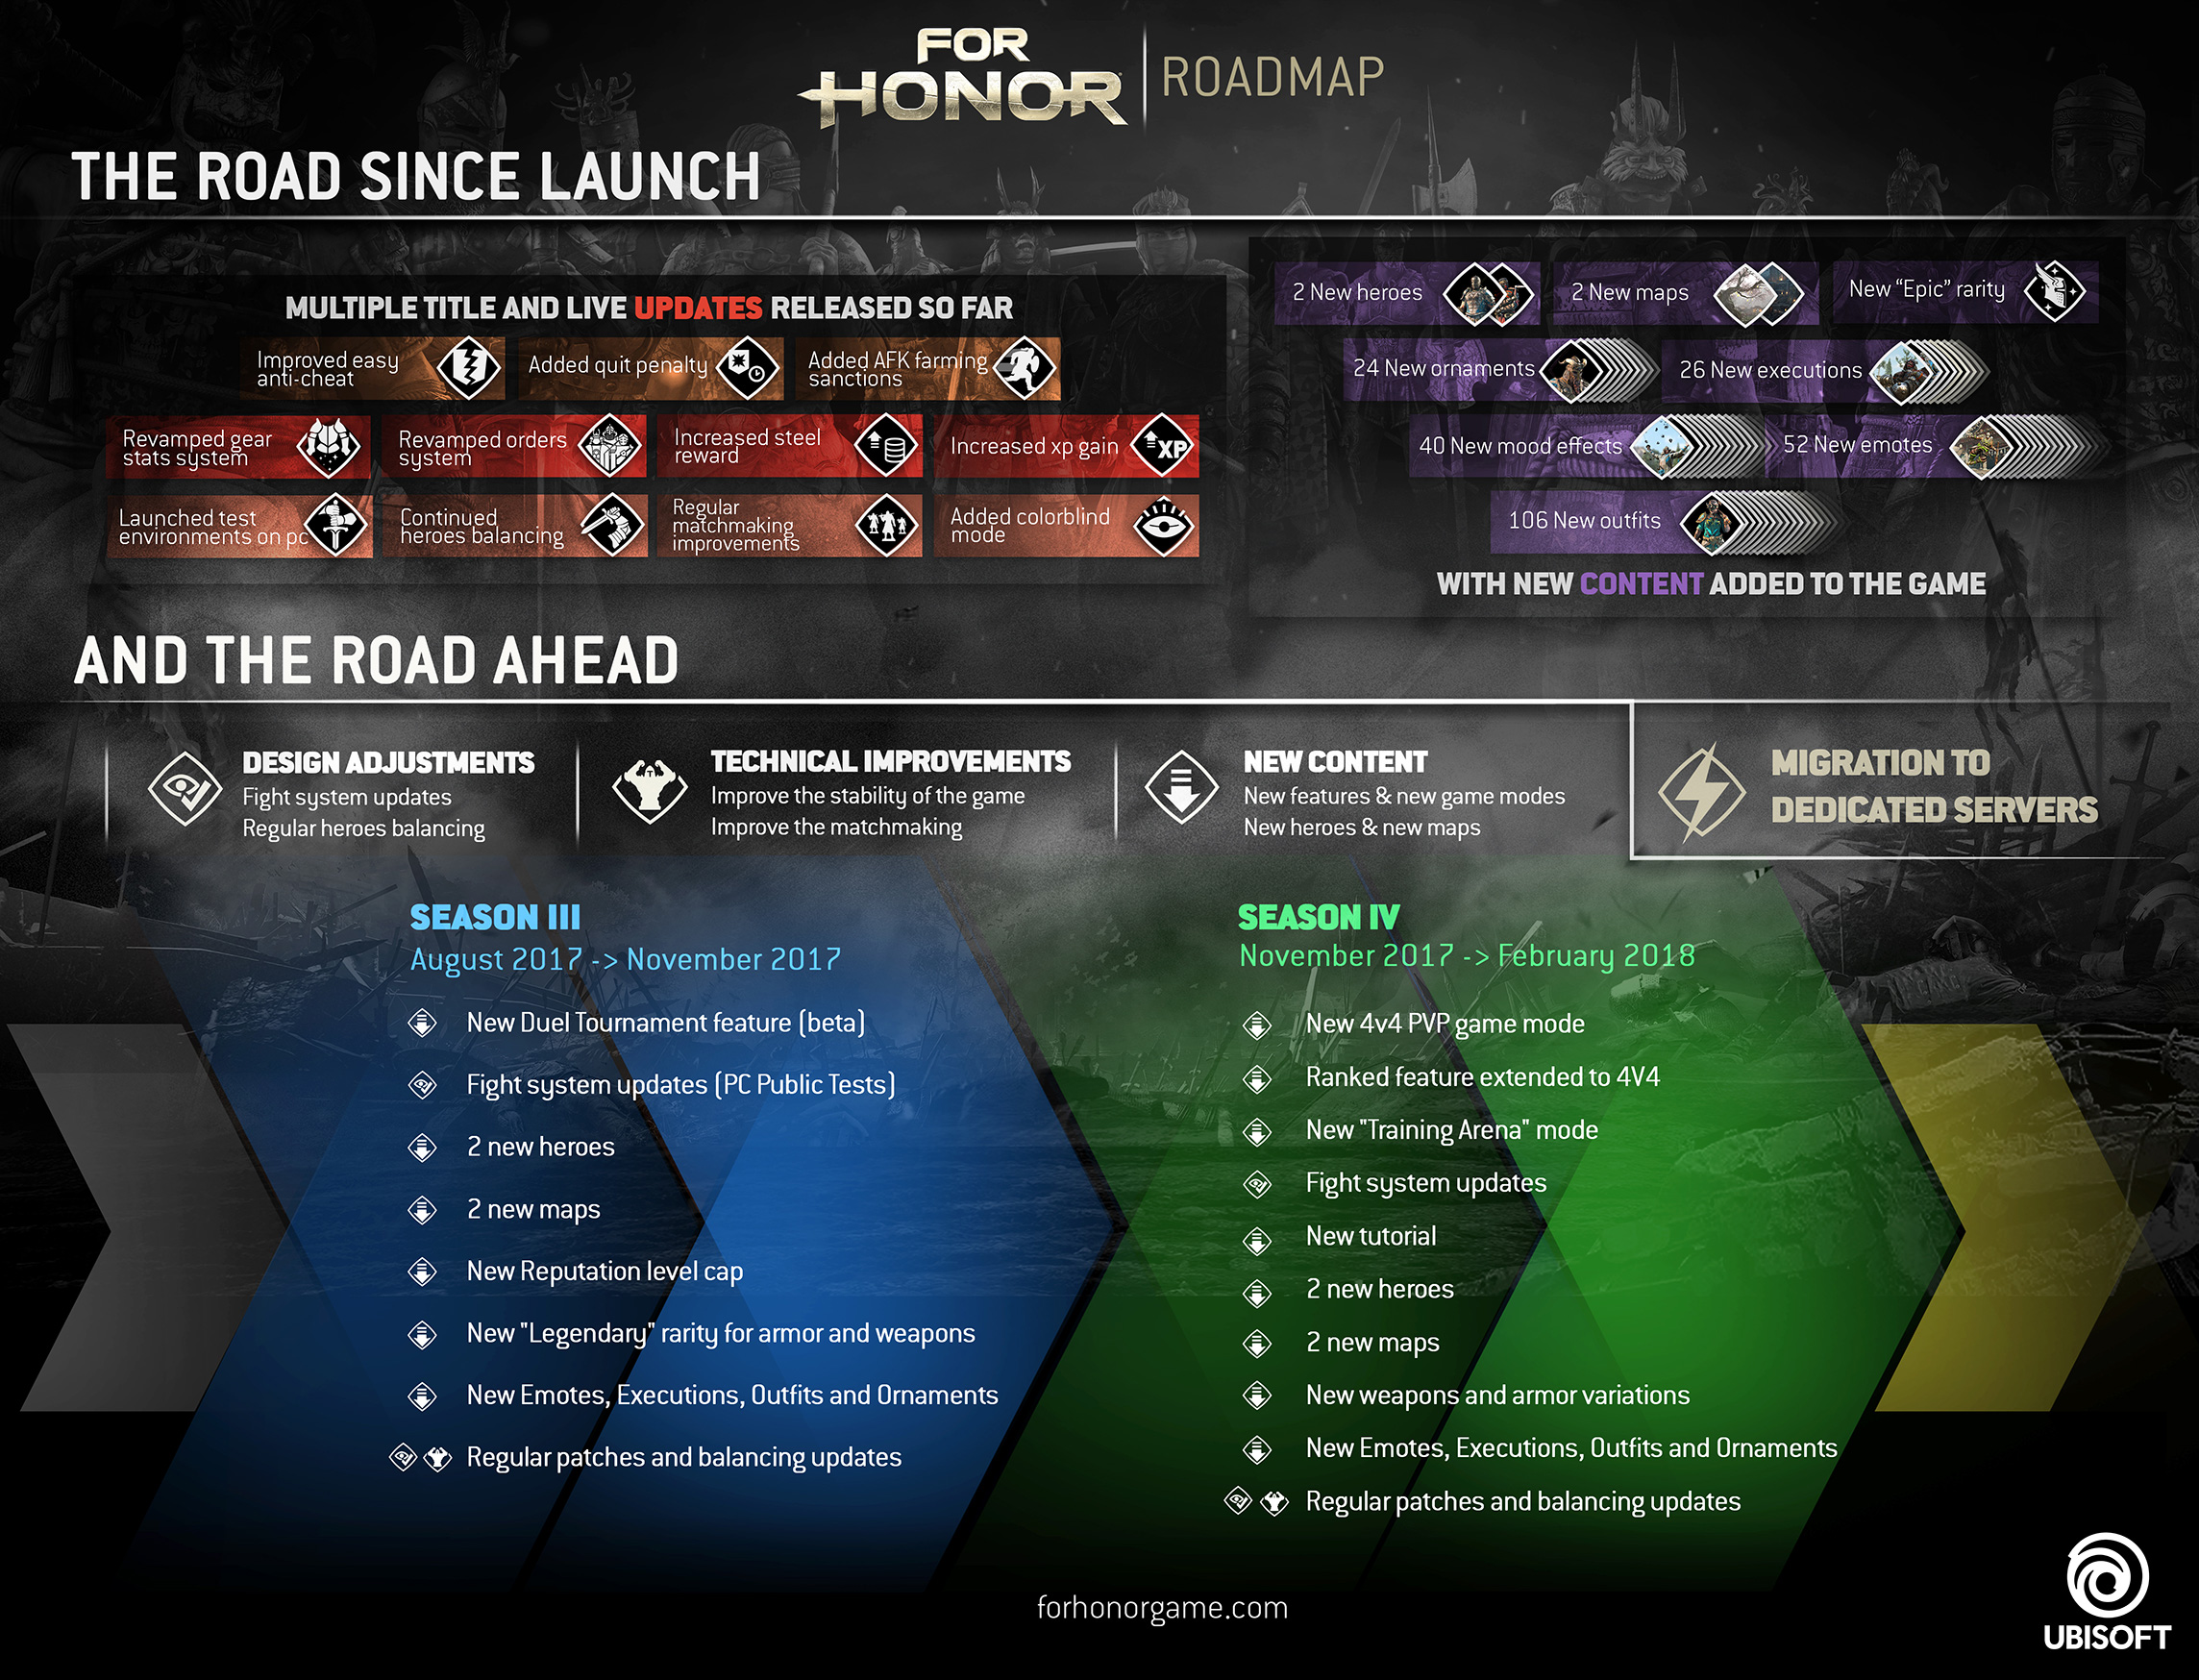 For Honor Roadmap Since Launch